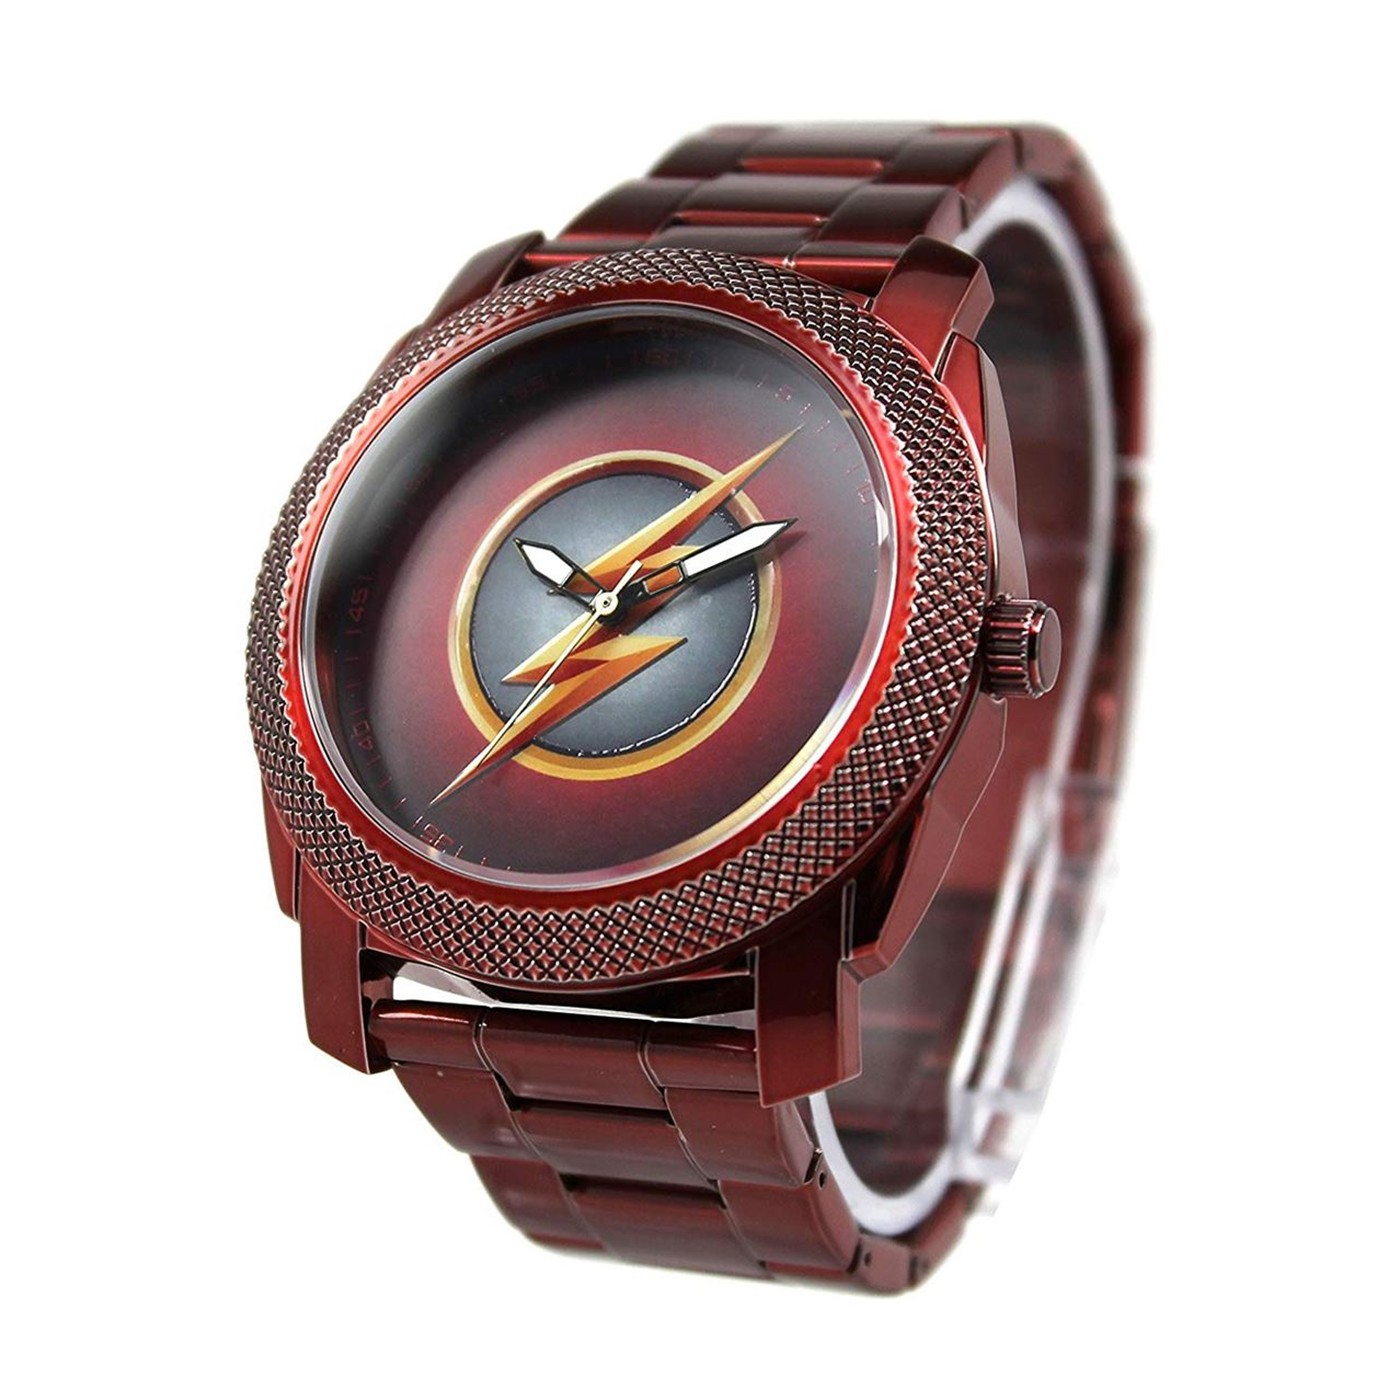 The Flash CW Stainless Steel Red Watch